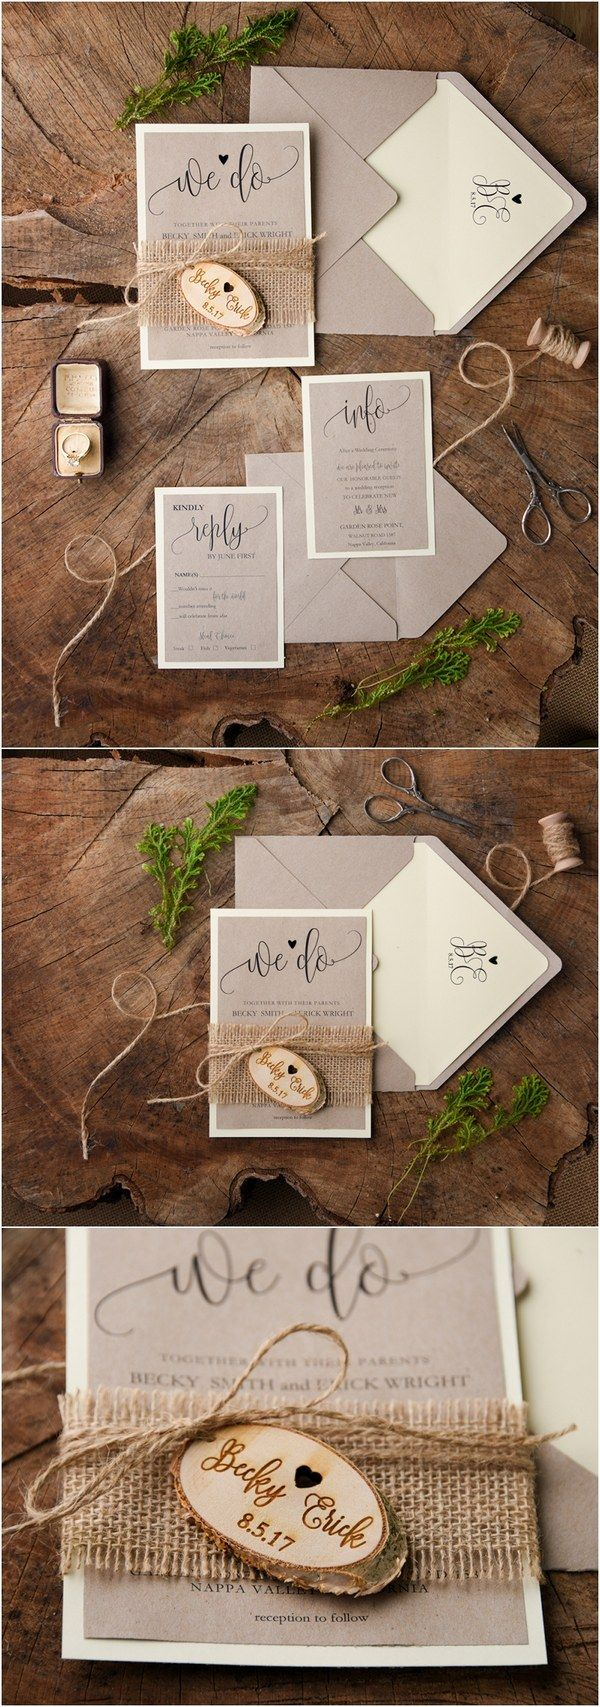 Rustic burlap and real wood wedding invitations @4LOVEPolkaDots                                                                                                                                                     More